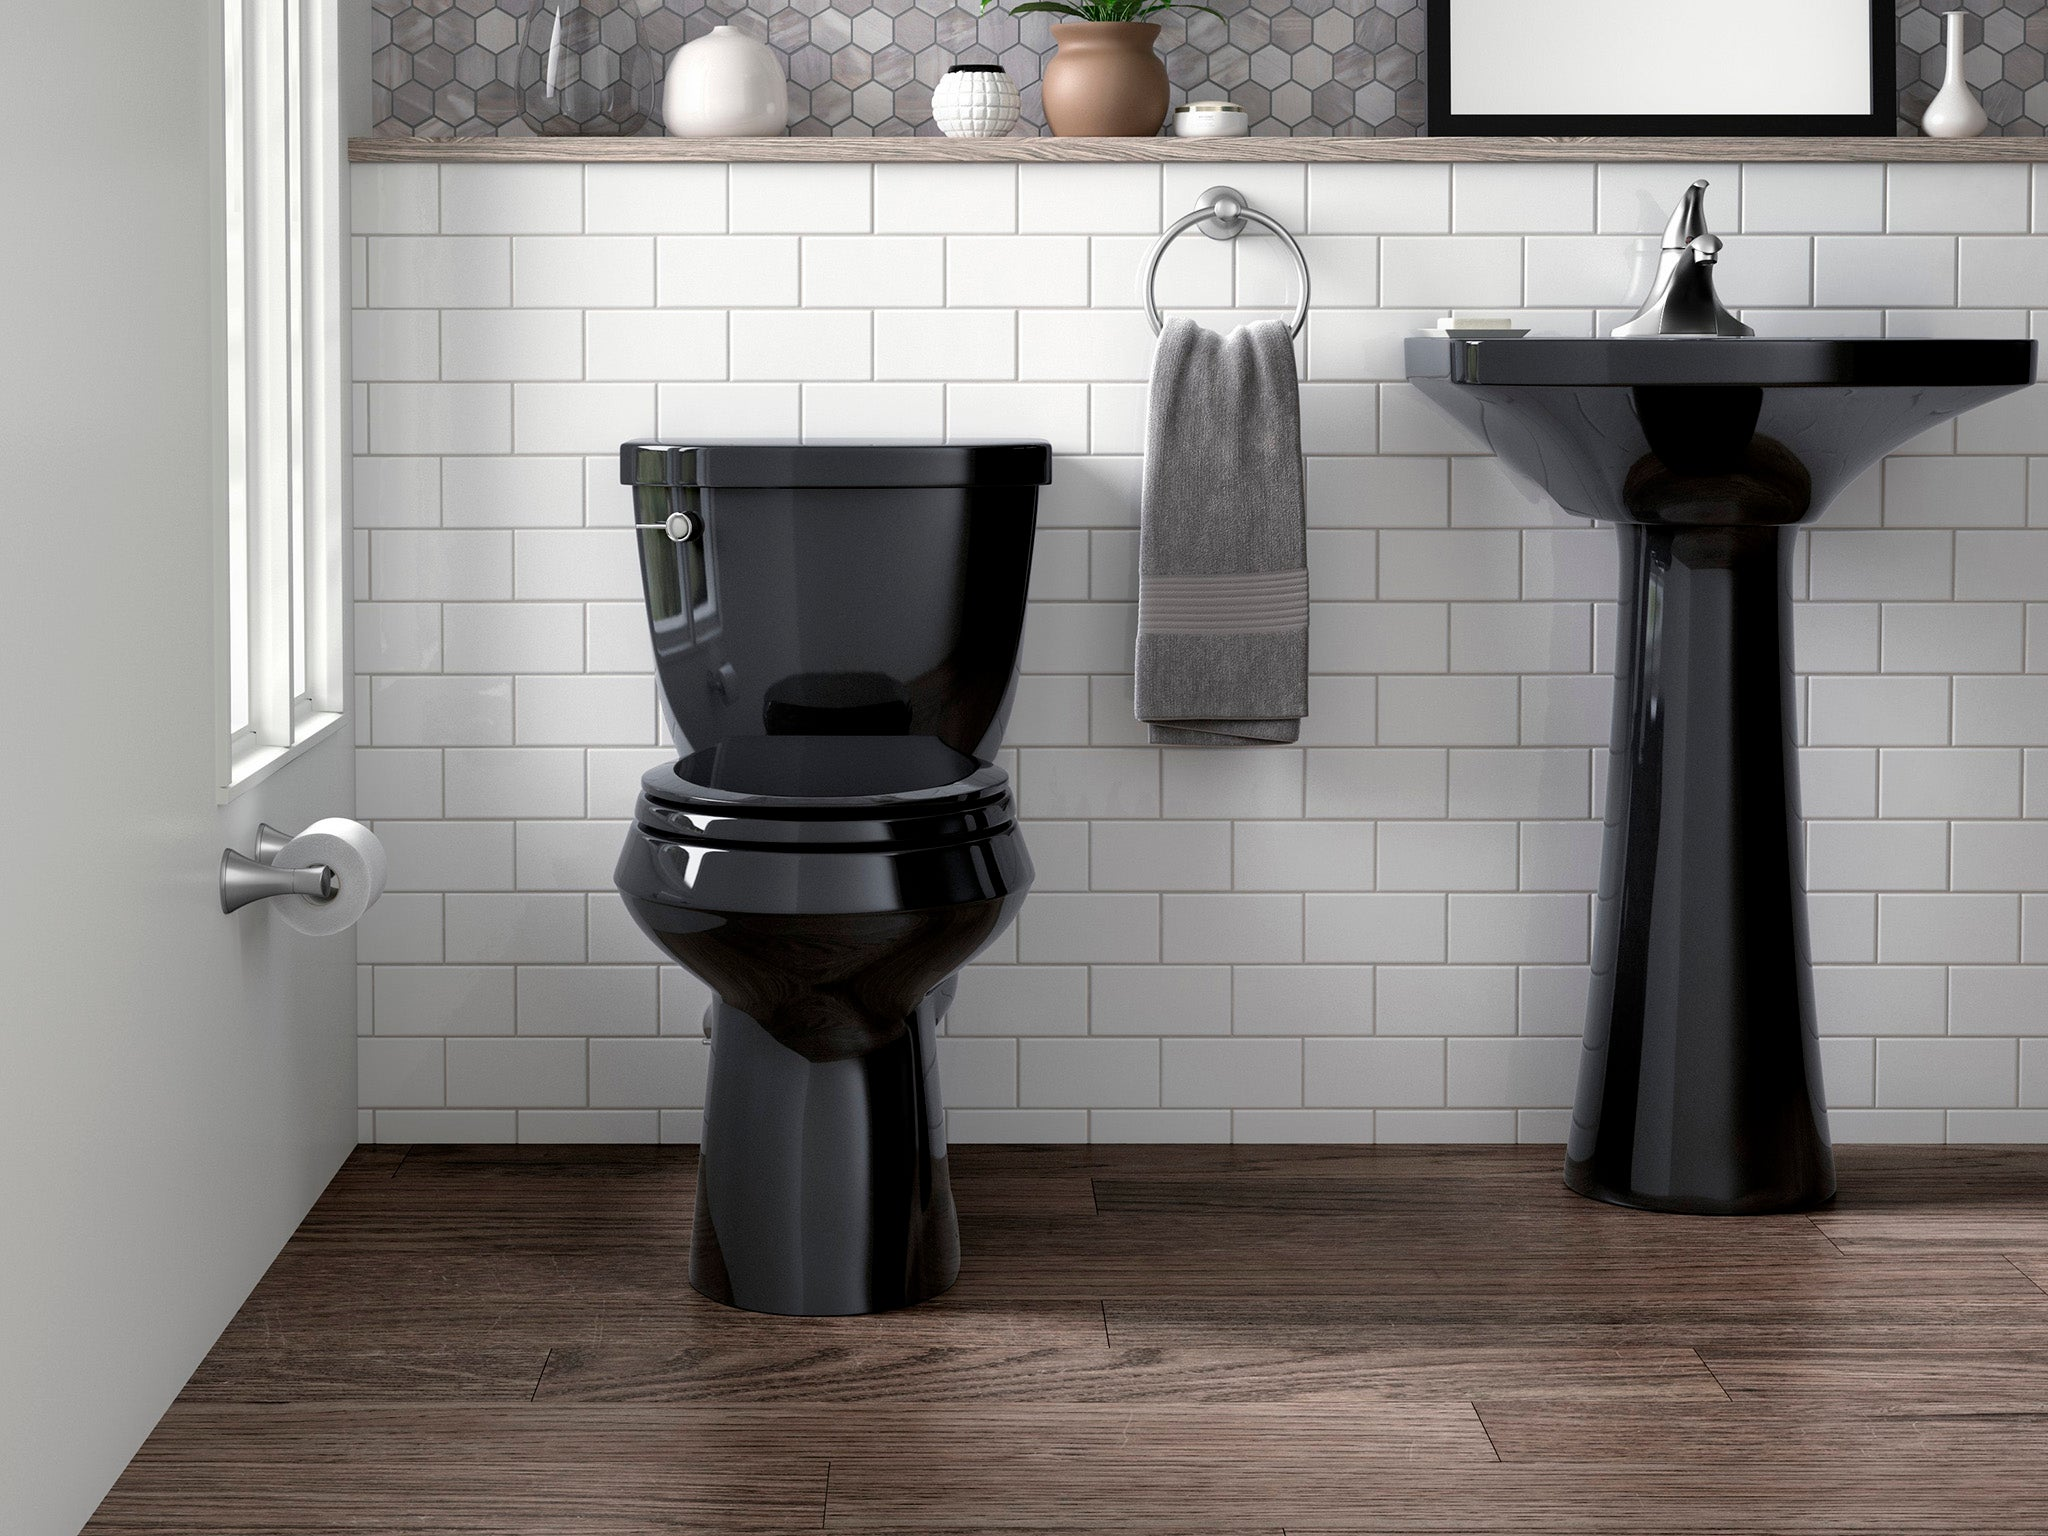 The black toilet: An unconventional bathroom accessory that\'s back ...